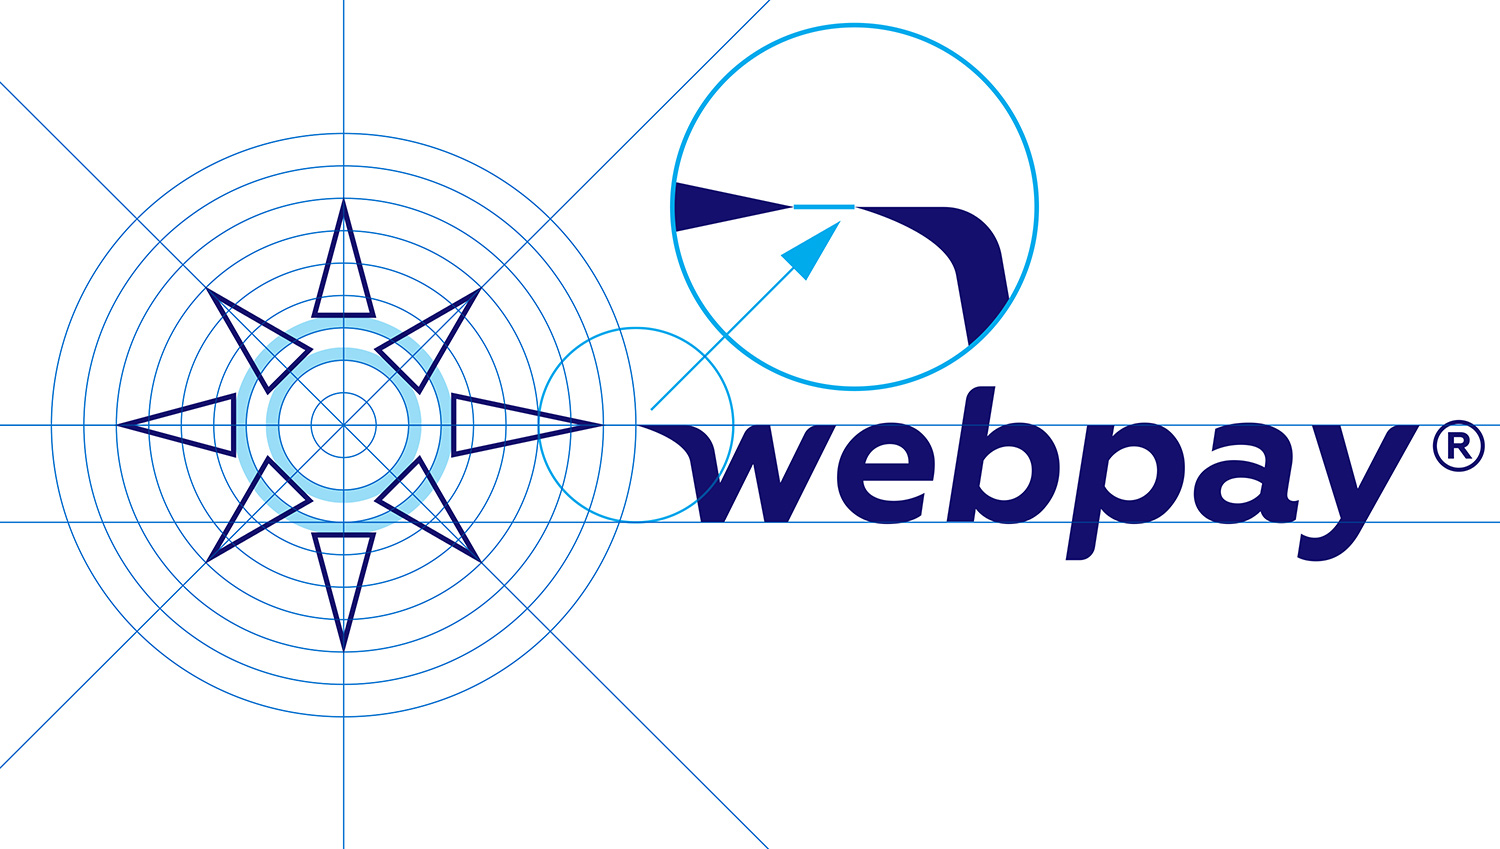 Webpay logo idea and design, graphic sign construction scheme, and the font style for the company name.